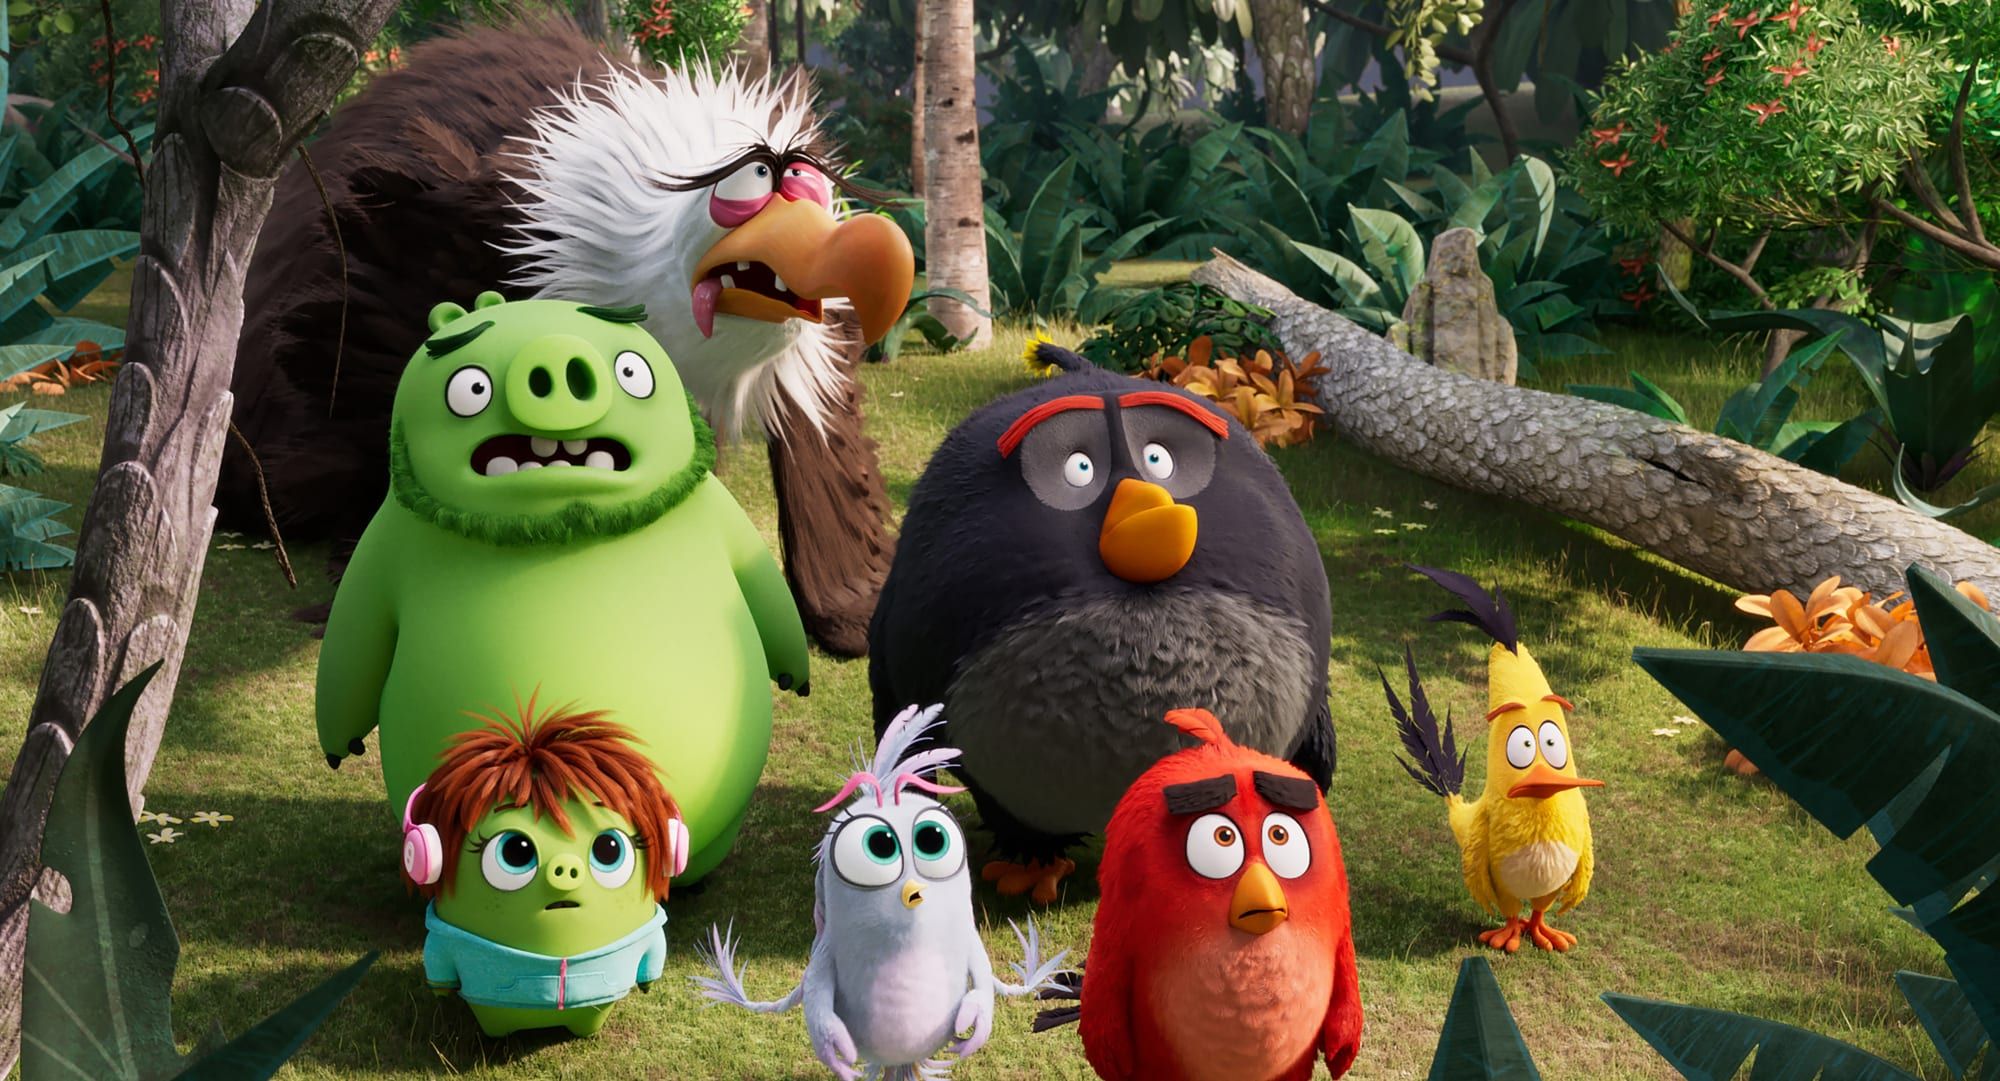 Will Angry Birds 2 be available to stream on Prime Video?